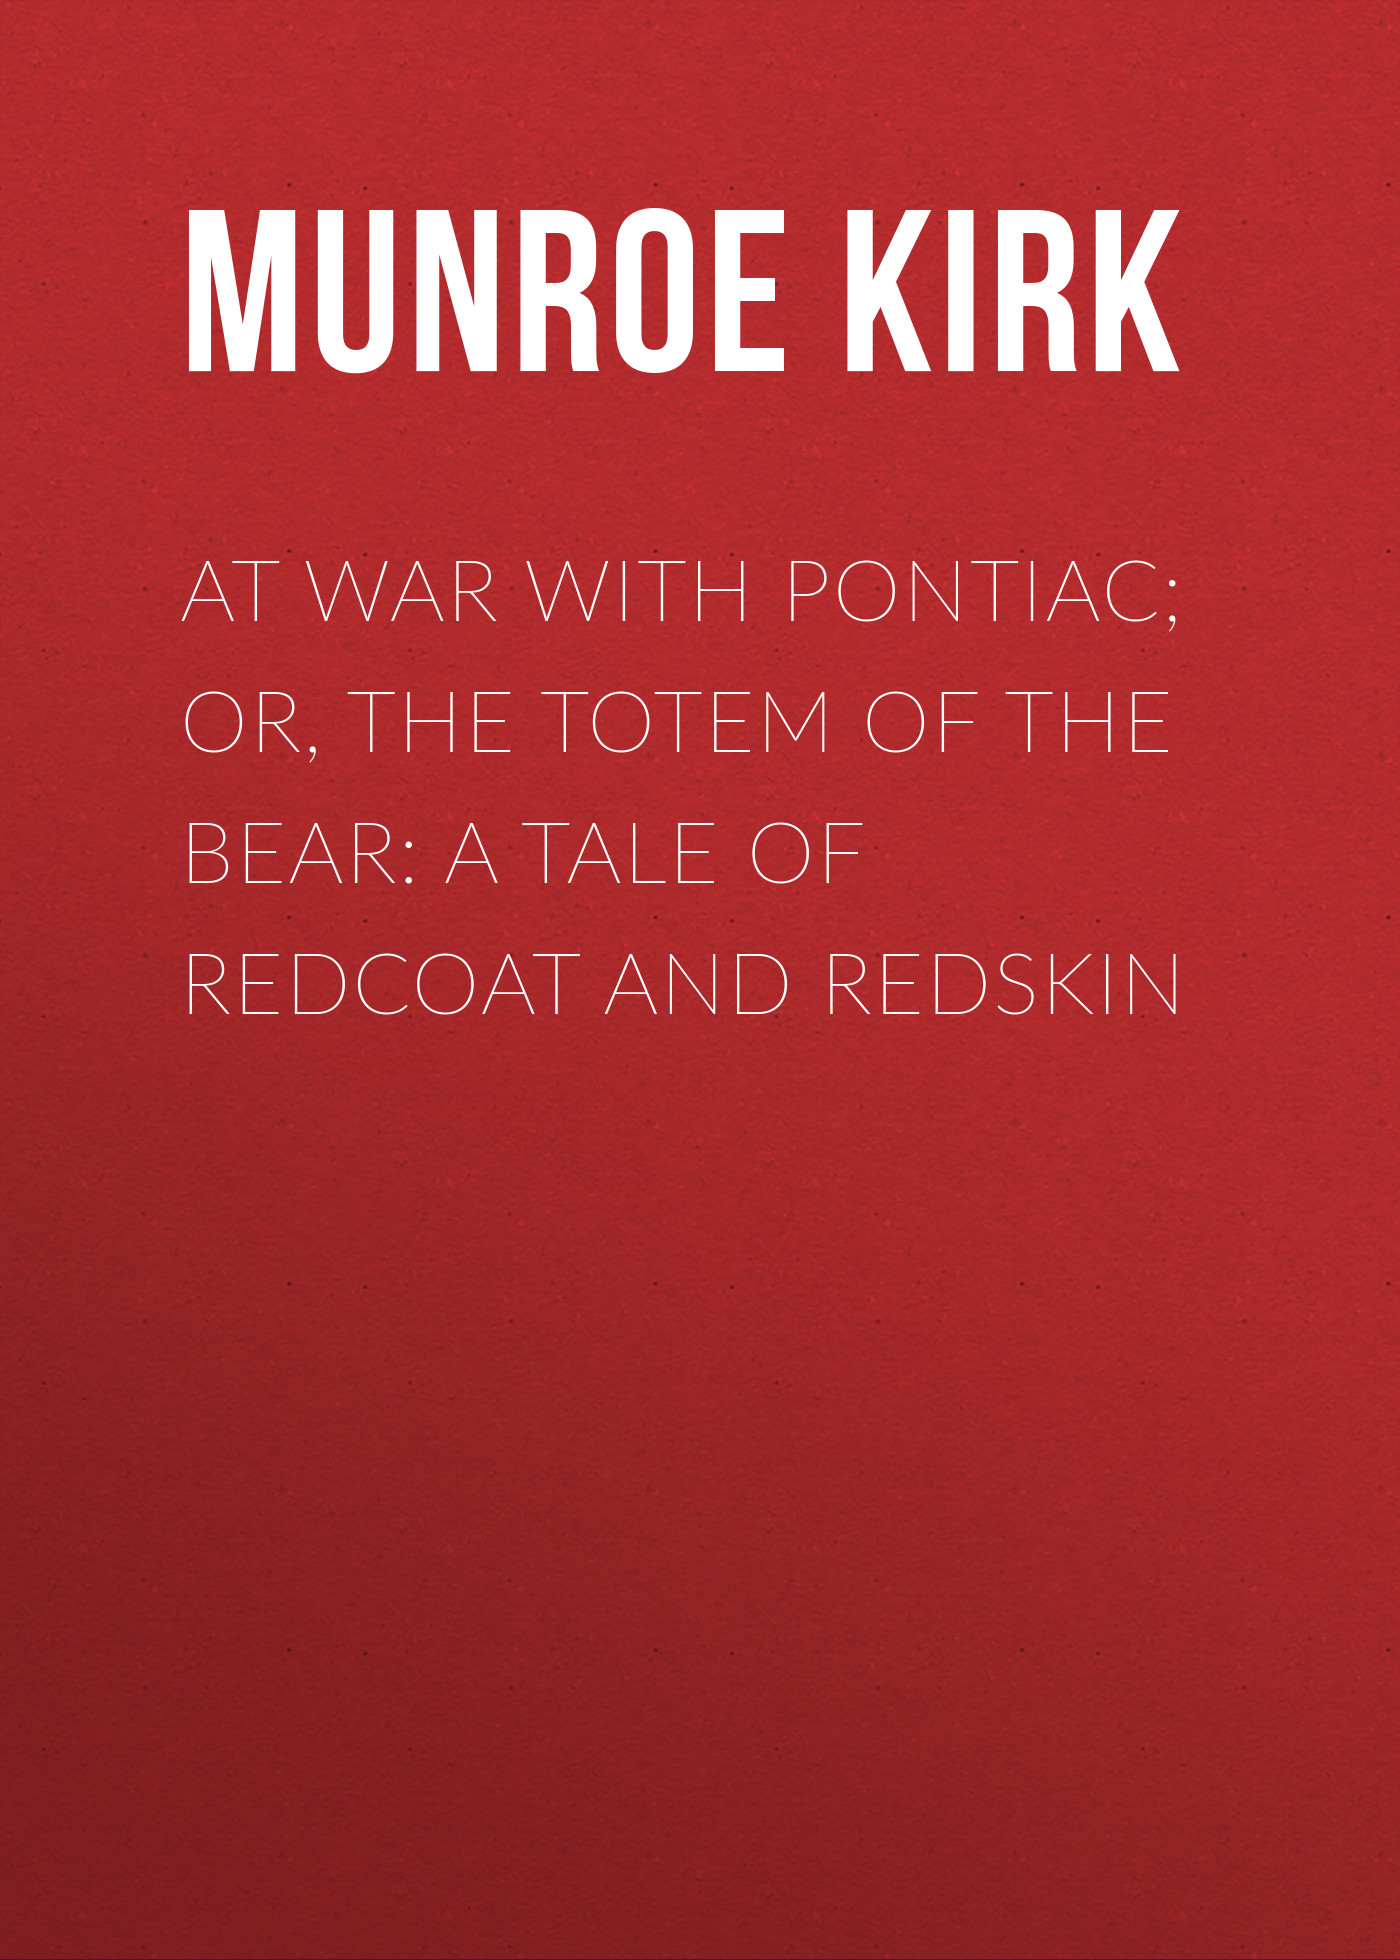 Munroe Kirk At War with Pontiac; Or, The Totem of the Bear: A Tale of Redcoat and Redskin francis parkman the conspiracy of pontiac and the indian war after the conquest of canada microform